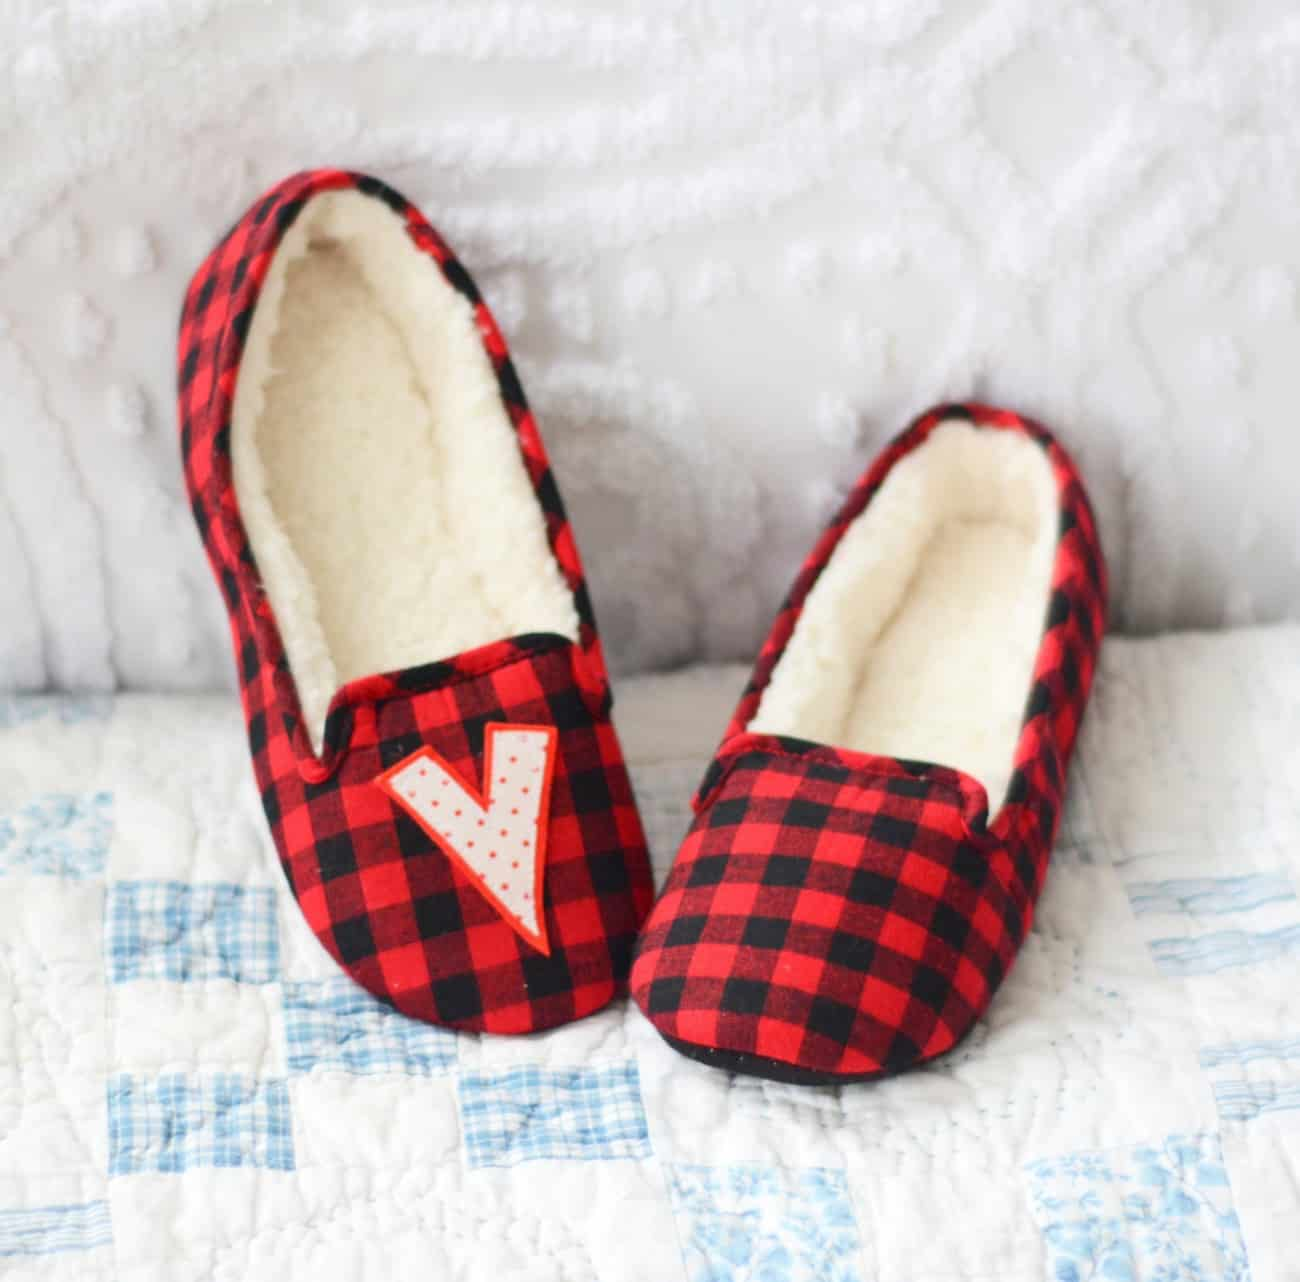 It is really easy to add a special touch to plain slippers - make them a wonderful personalized gift that your special someone will absolutely love!